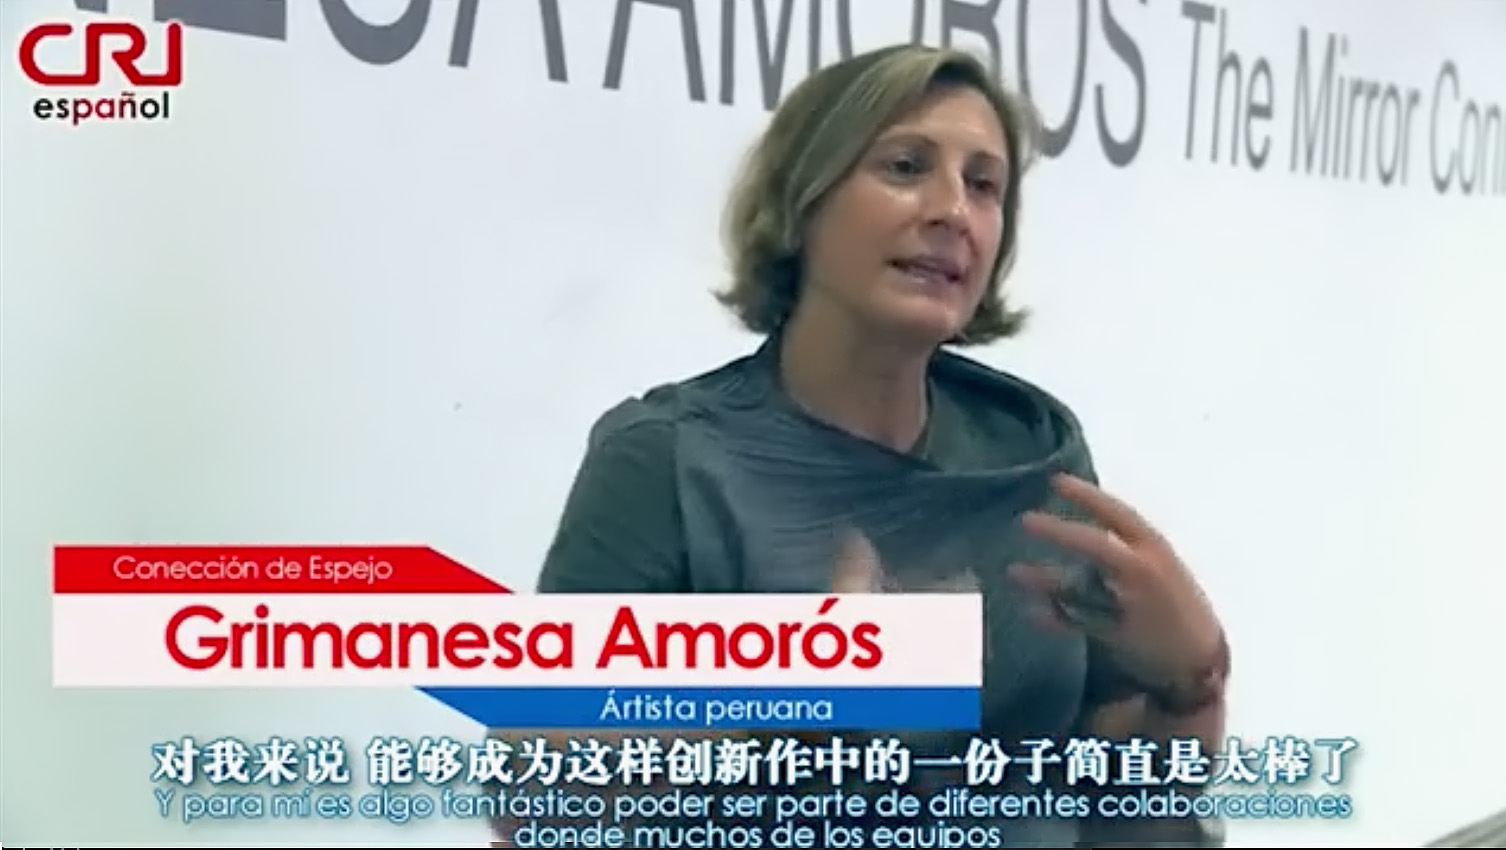 grimanesa amoros interview CRI